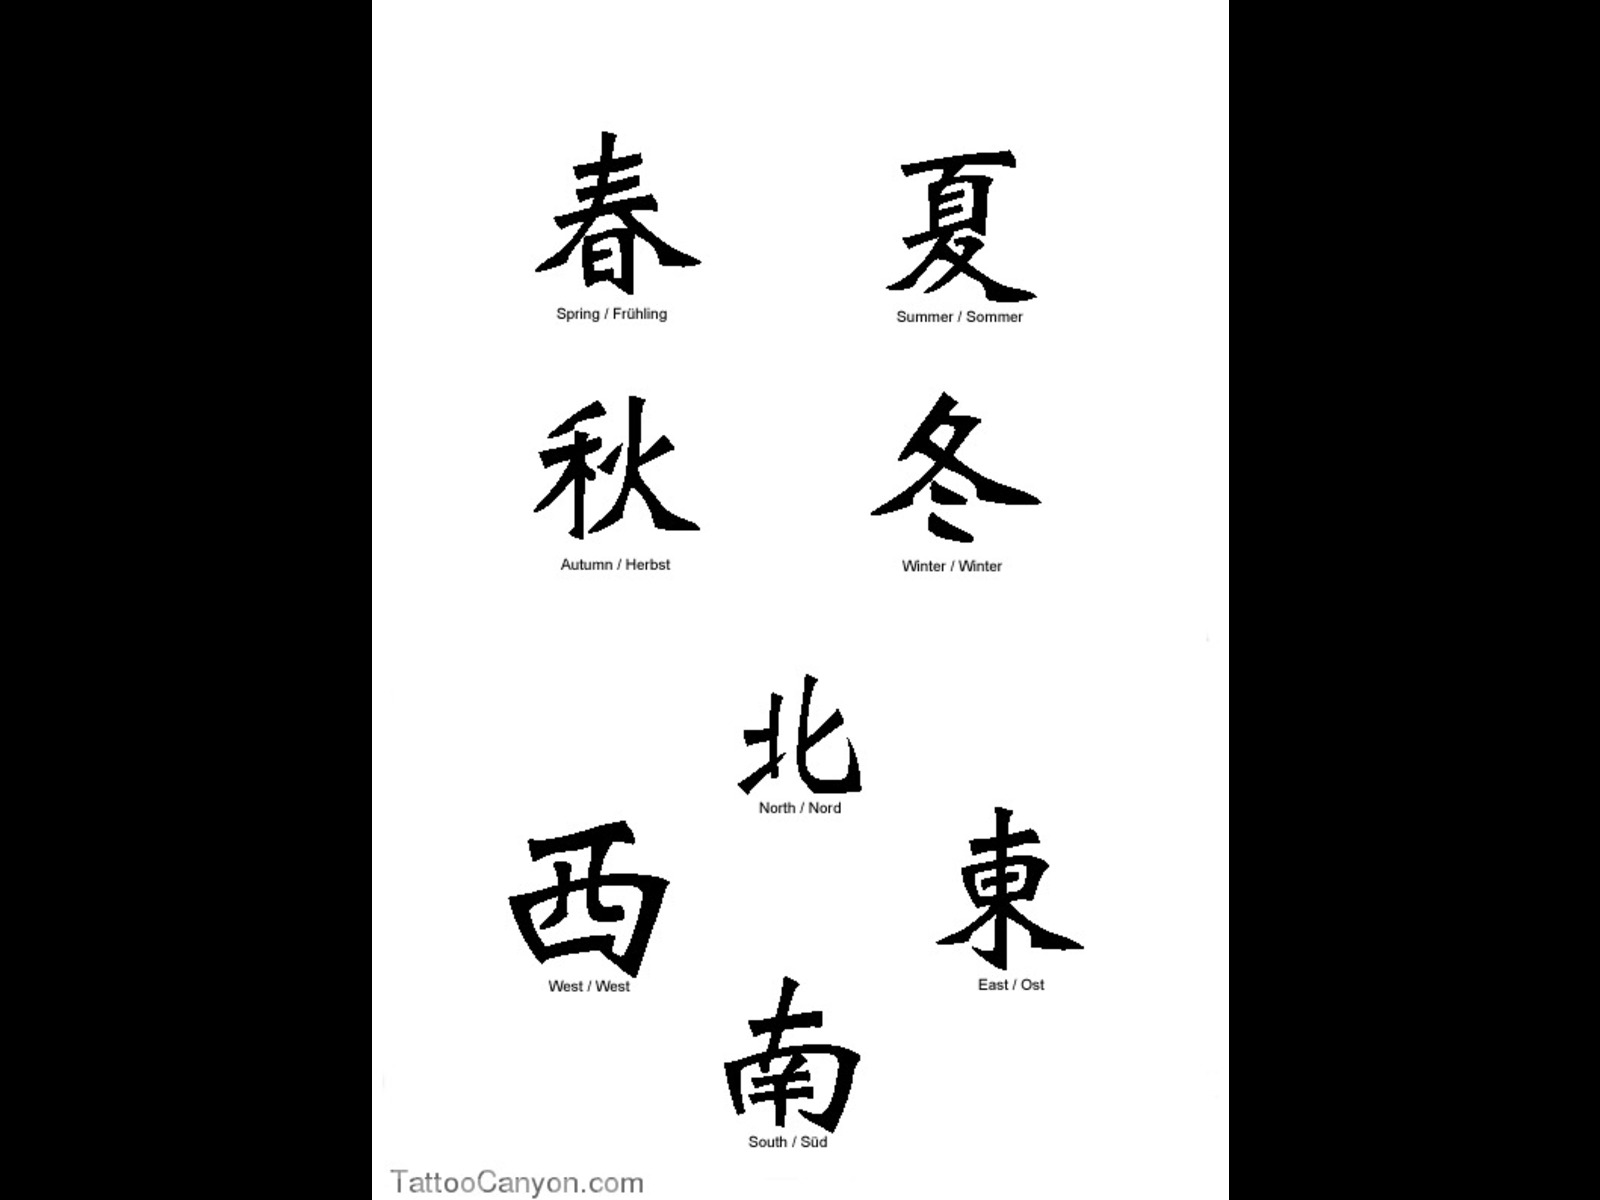 Funny chinese tattoos 19 free wallpaper funnypicture funny chinese tattoos 9 widescreen wallpaper funny chinese tattoos 9 widescreen wallpaper buycottarizona